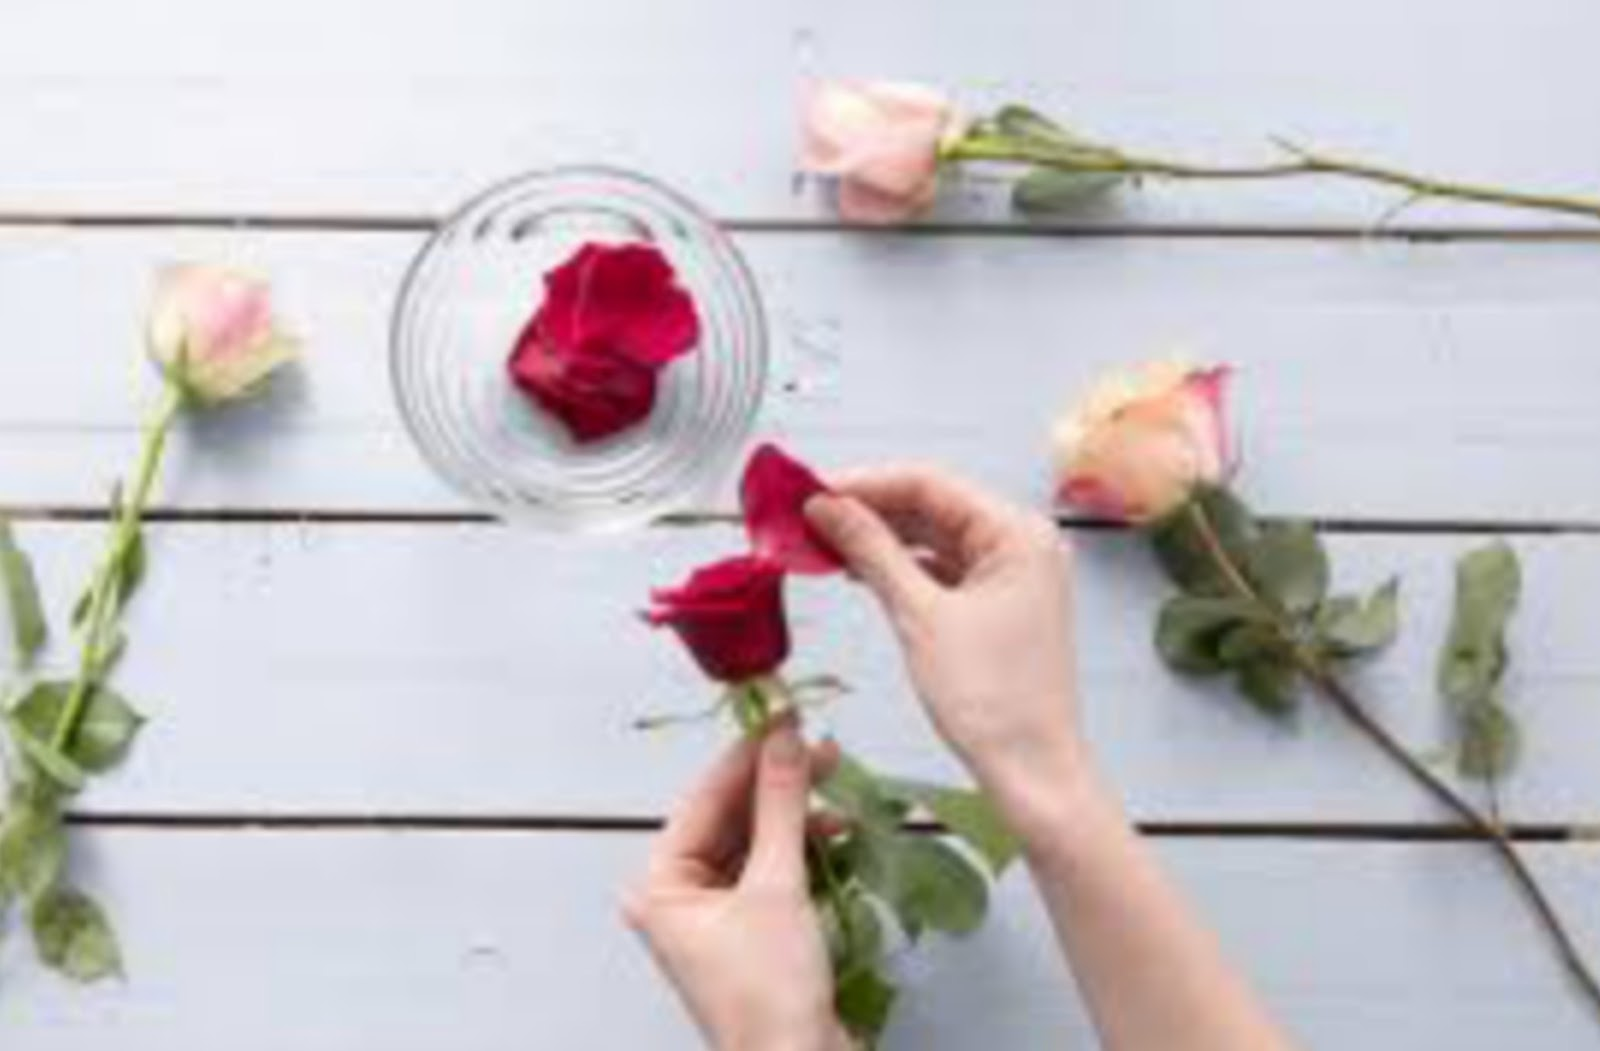 how to get glowing skin naturally pink rose to beauty - Glows